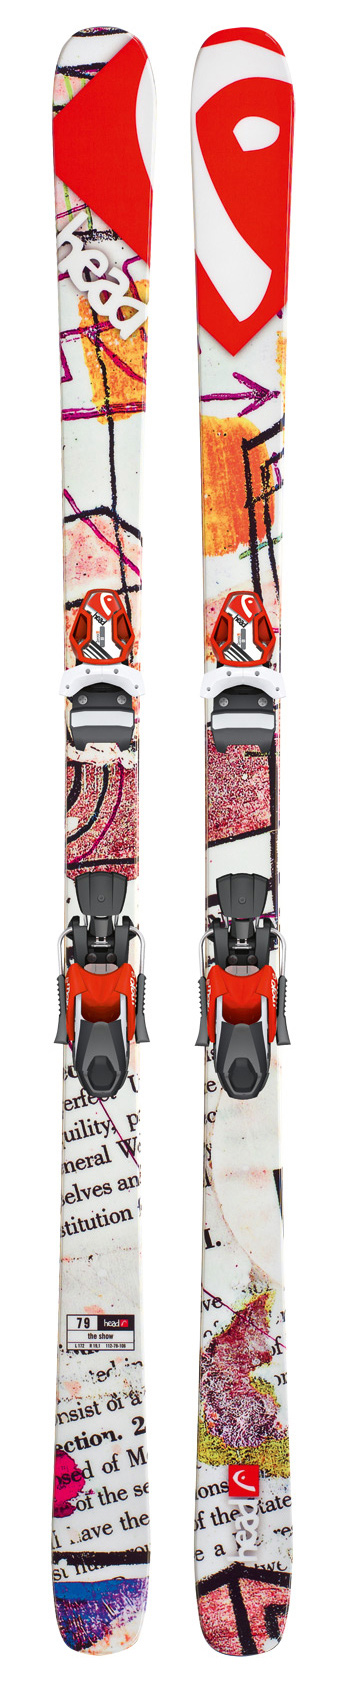 Ski Key Features of the Head The Show Skis w/ Mojo 11 Bindings: Lengths: 154/163/172/181 Dimensions: 112/79/106 @ length 172 Radius: 19.1 @ length 172 Twin Tip Construction Highly Transparent UHM C Base Tuff Wall PNP Rocker Bindings: Mojo 12 Wide 97 Park & Pipe Terrain Head Mojo 11 Ski Bindings DIN 3-11 1670g SX Toe with TRP System Full Diagonal Teflon Wide SX Heel Dura Coating - $314.95